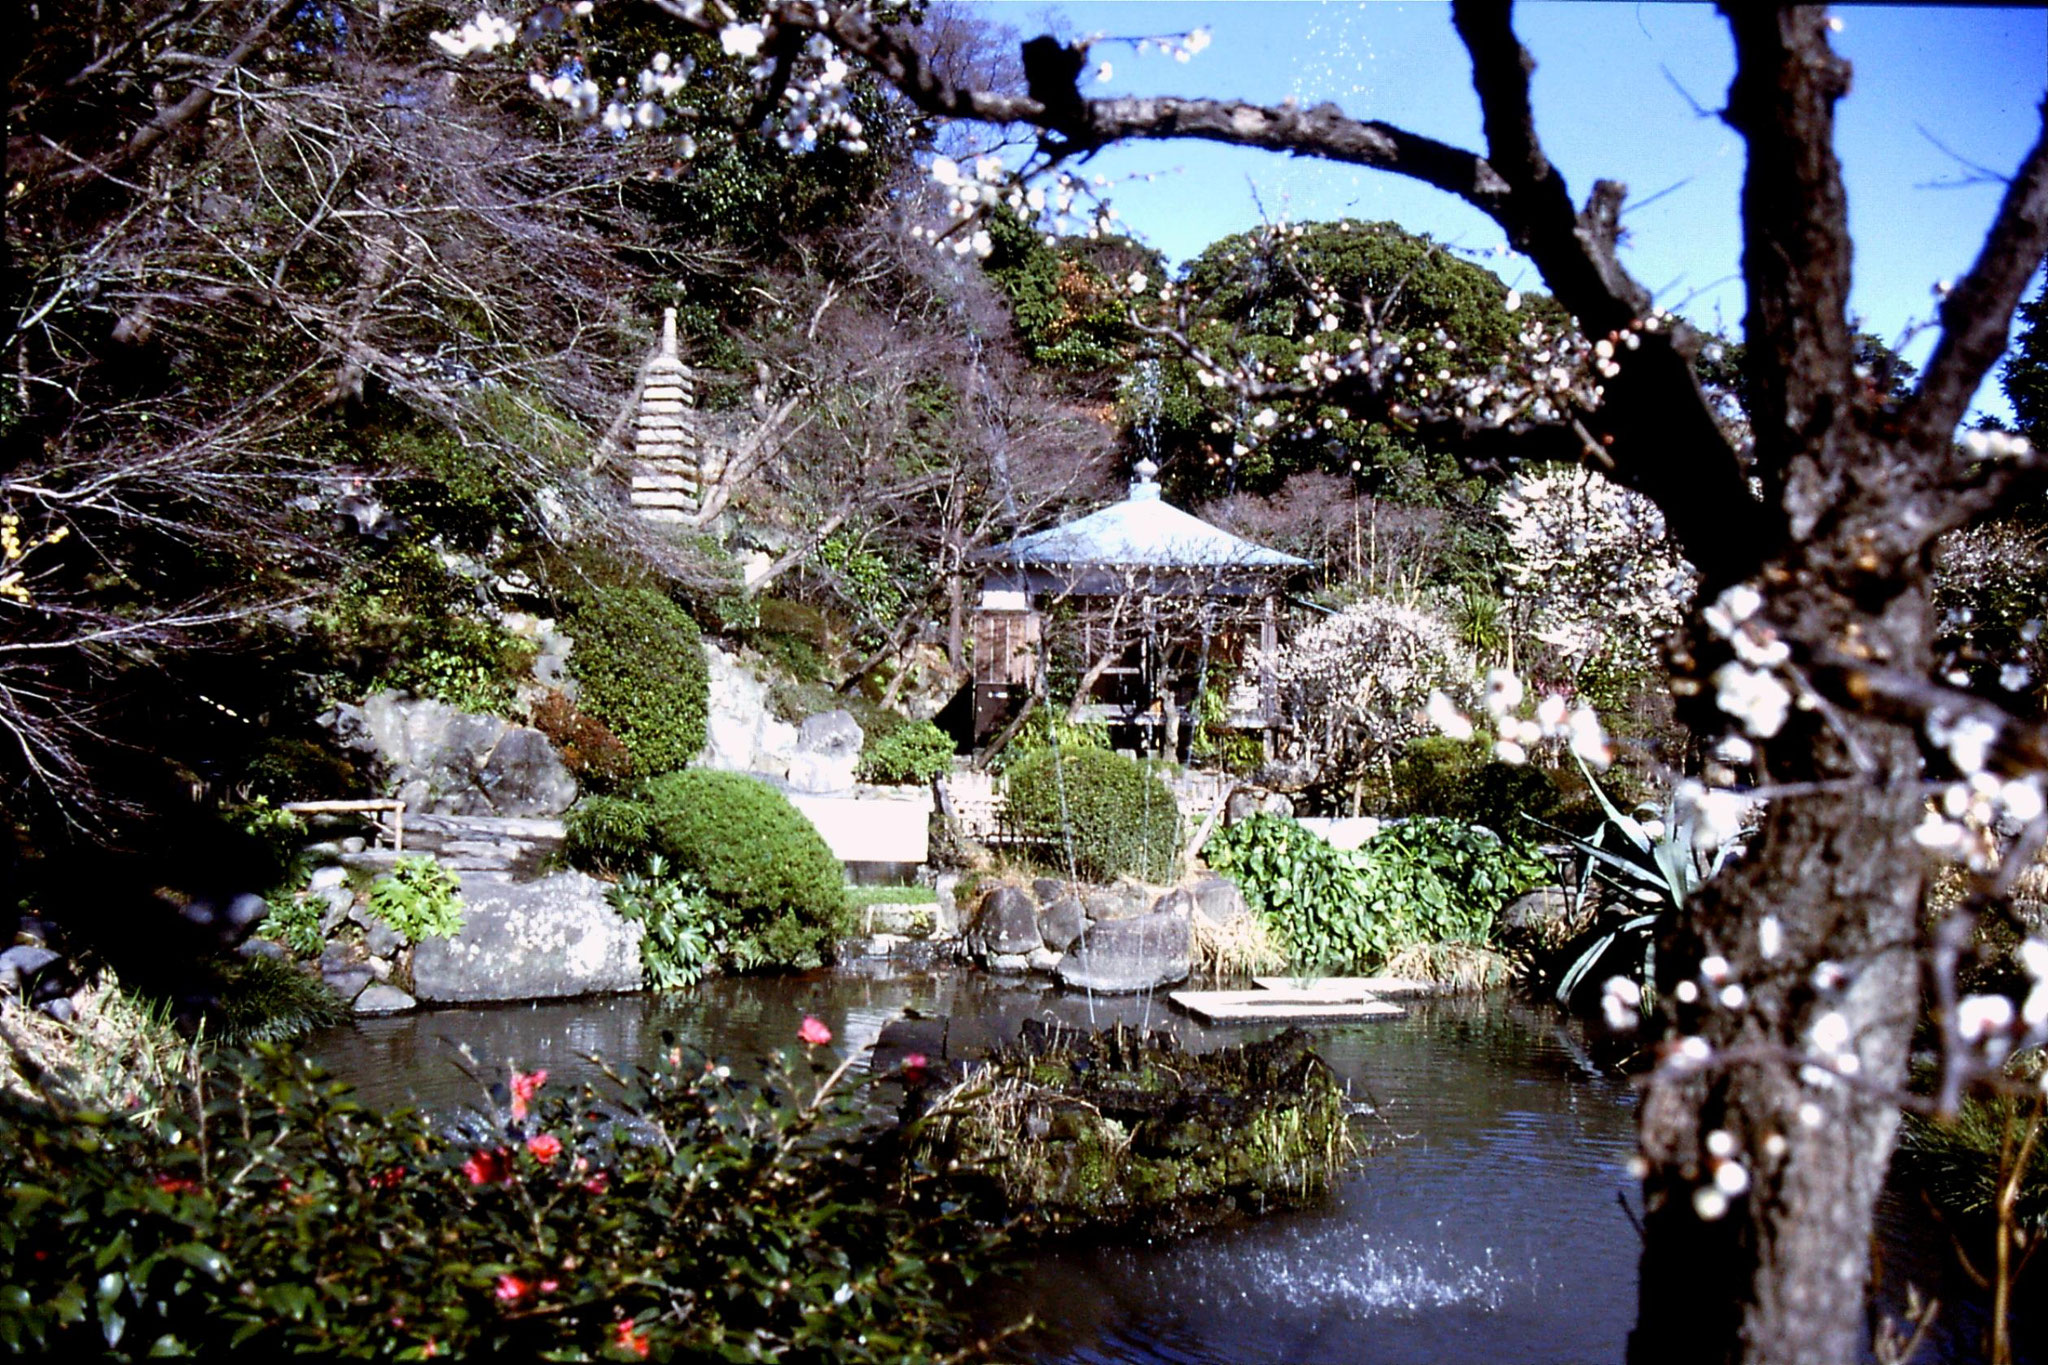 29/1/1989: 0: garden at Hase Canon Temple